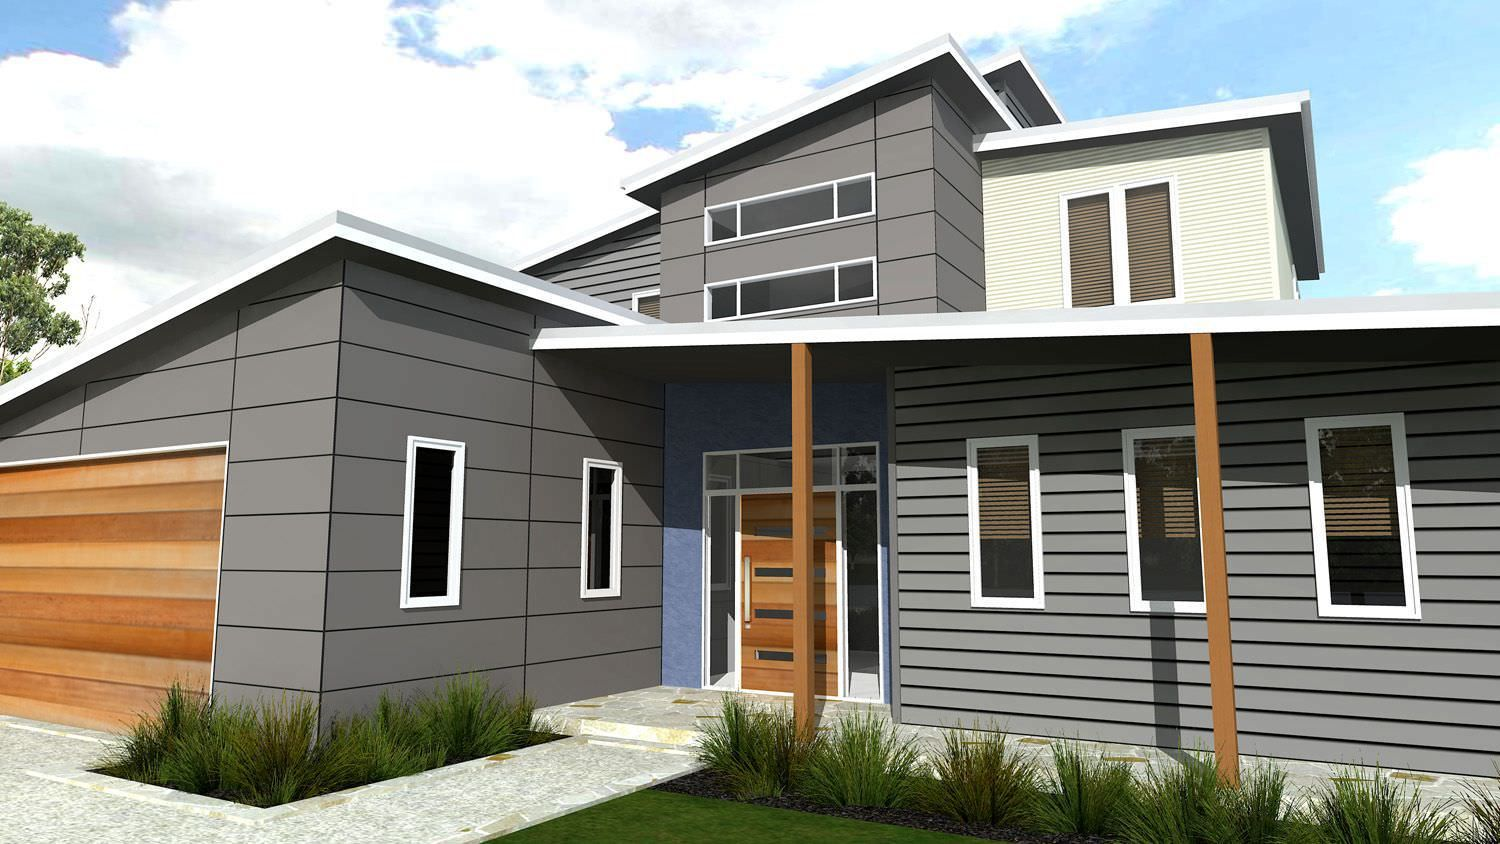 Design of march 2013 modern kit home picture of skillion roof modern contemporary and two storey